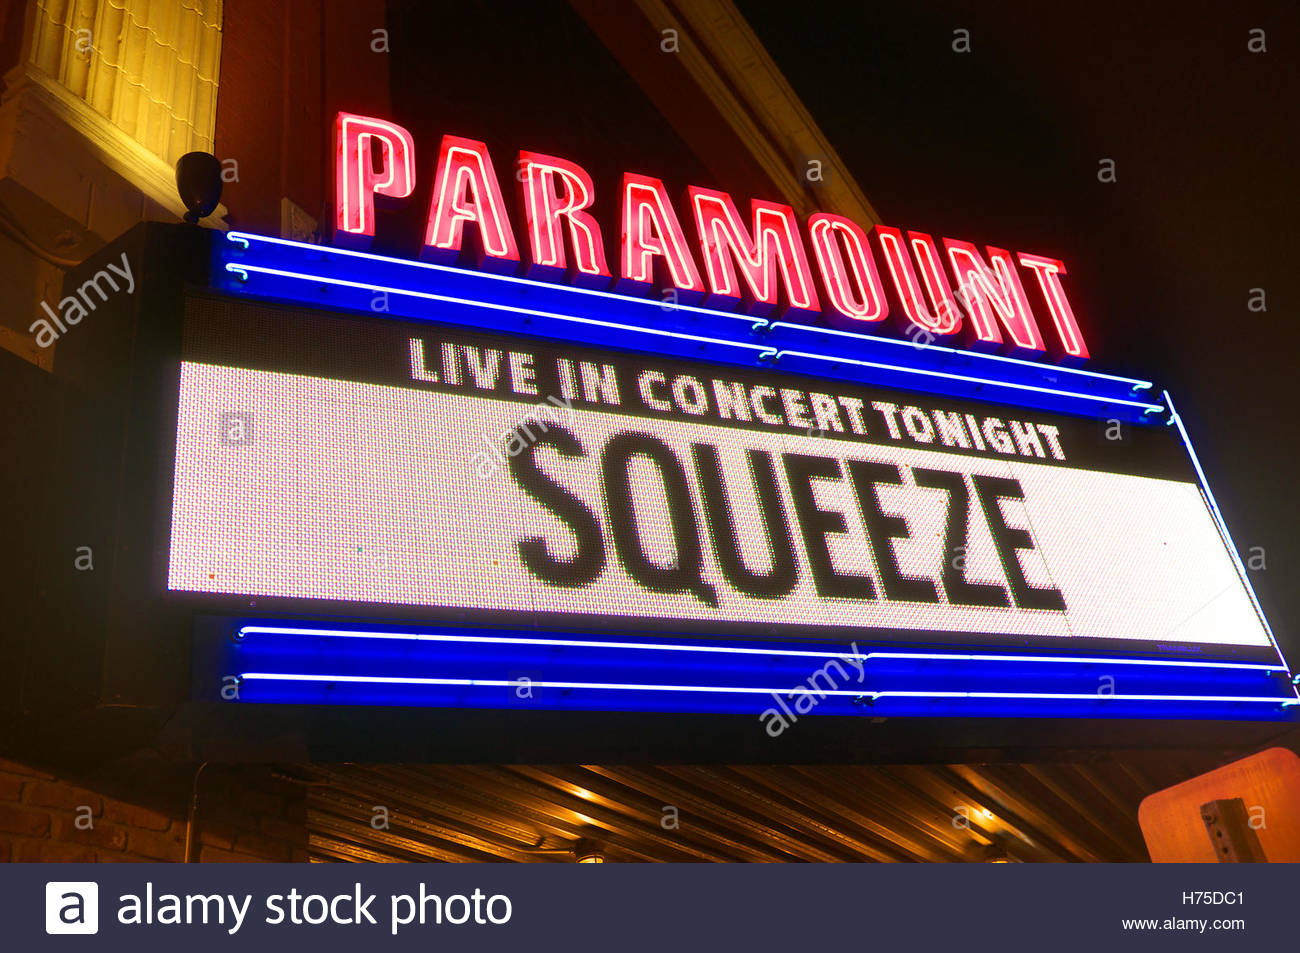 Marquee sign lit up, highlighting Squeeze concert, at the Paramount, in Huntington, Suffolk County, New York State, - Stock Image